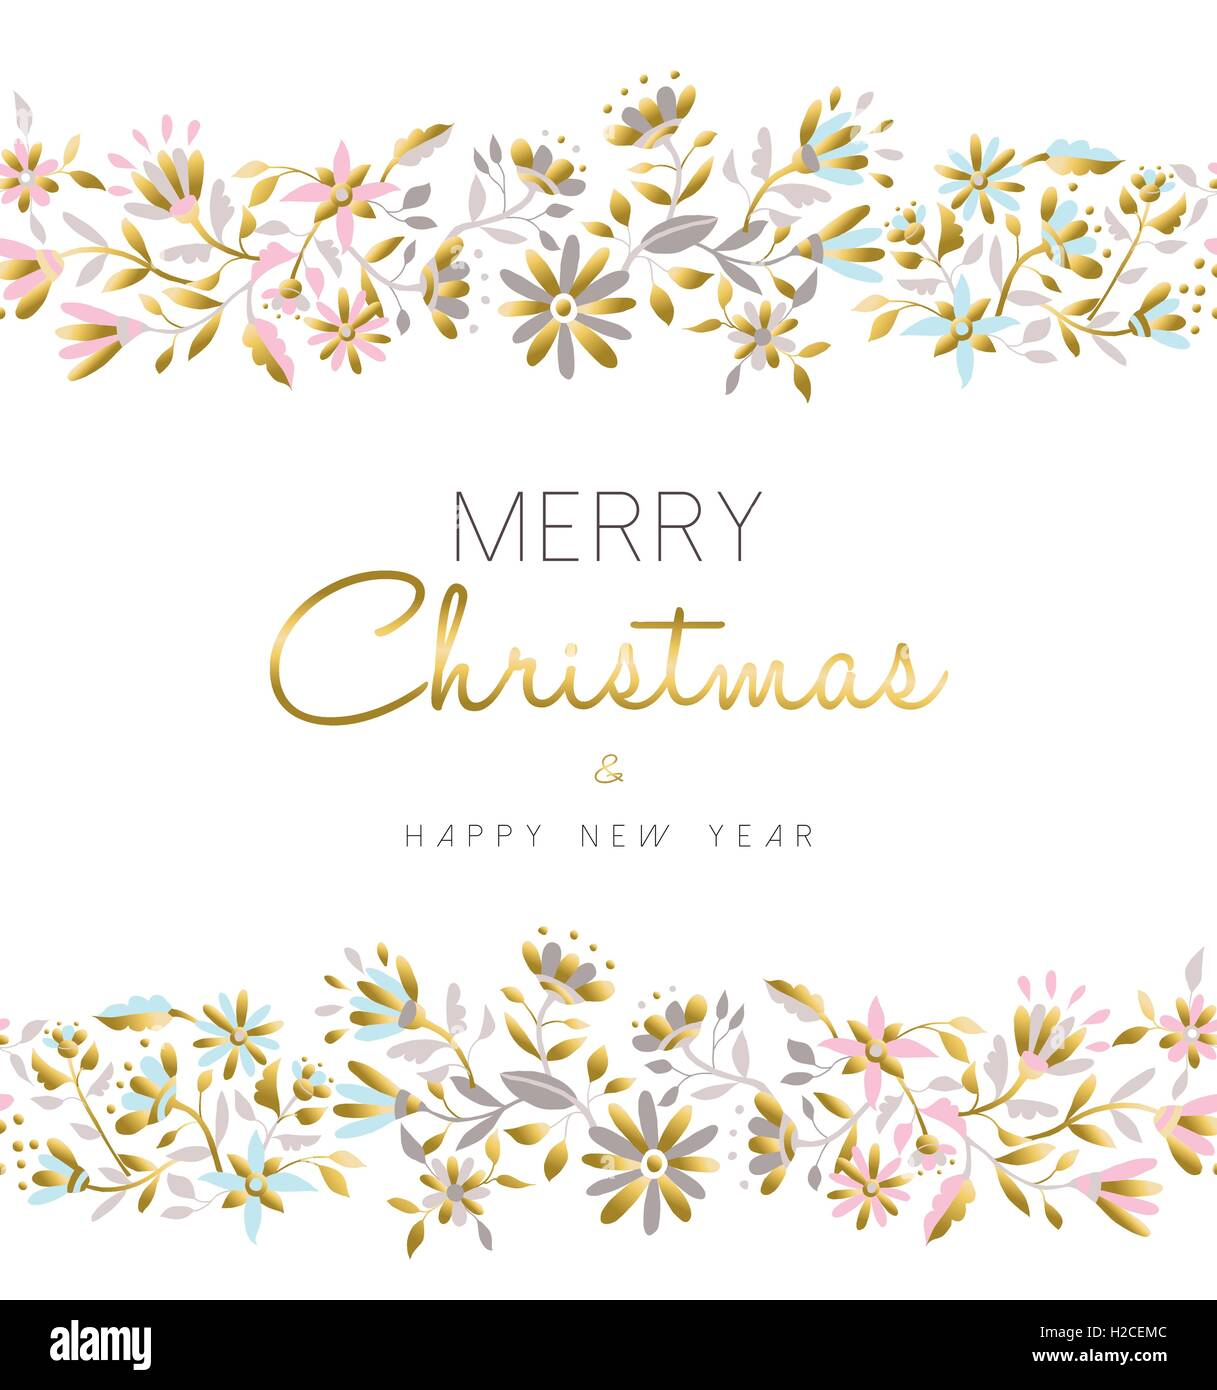 merry christmas and happy new year floral seamless pattern background in gold pastel color with flower illustration eps10